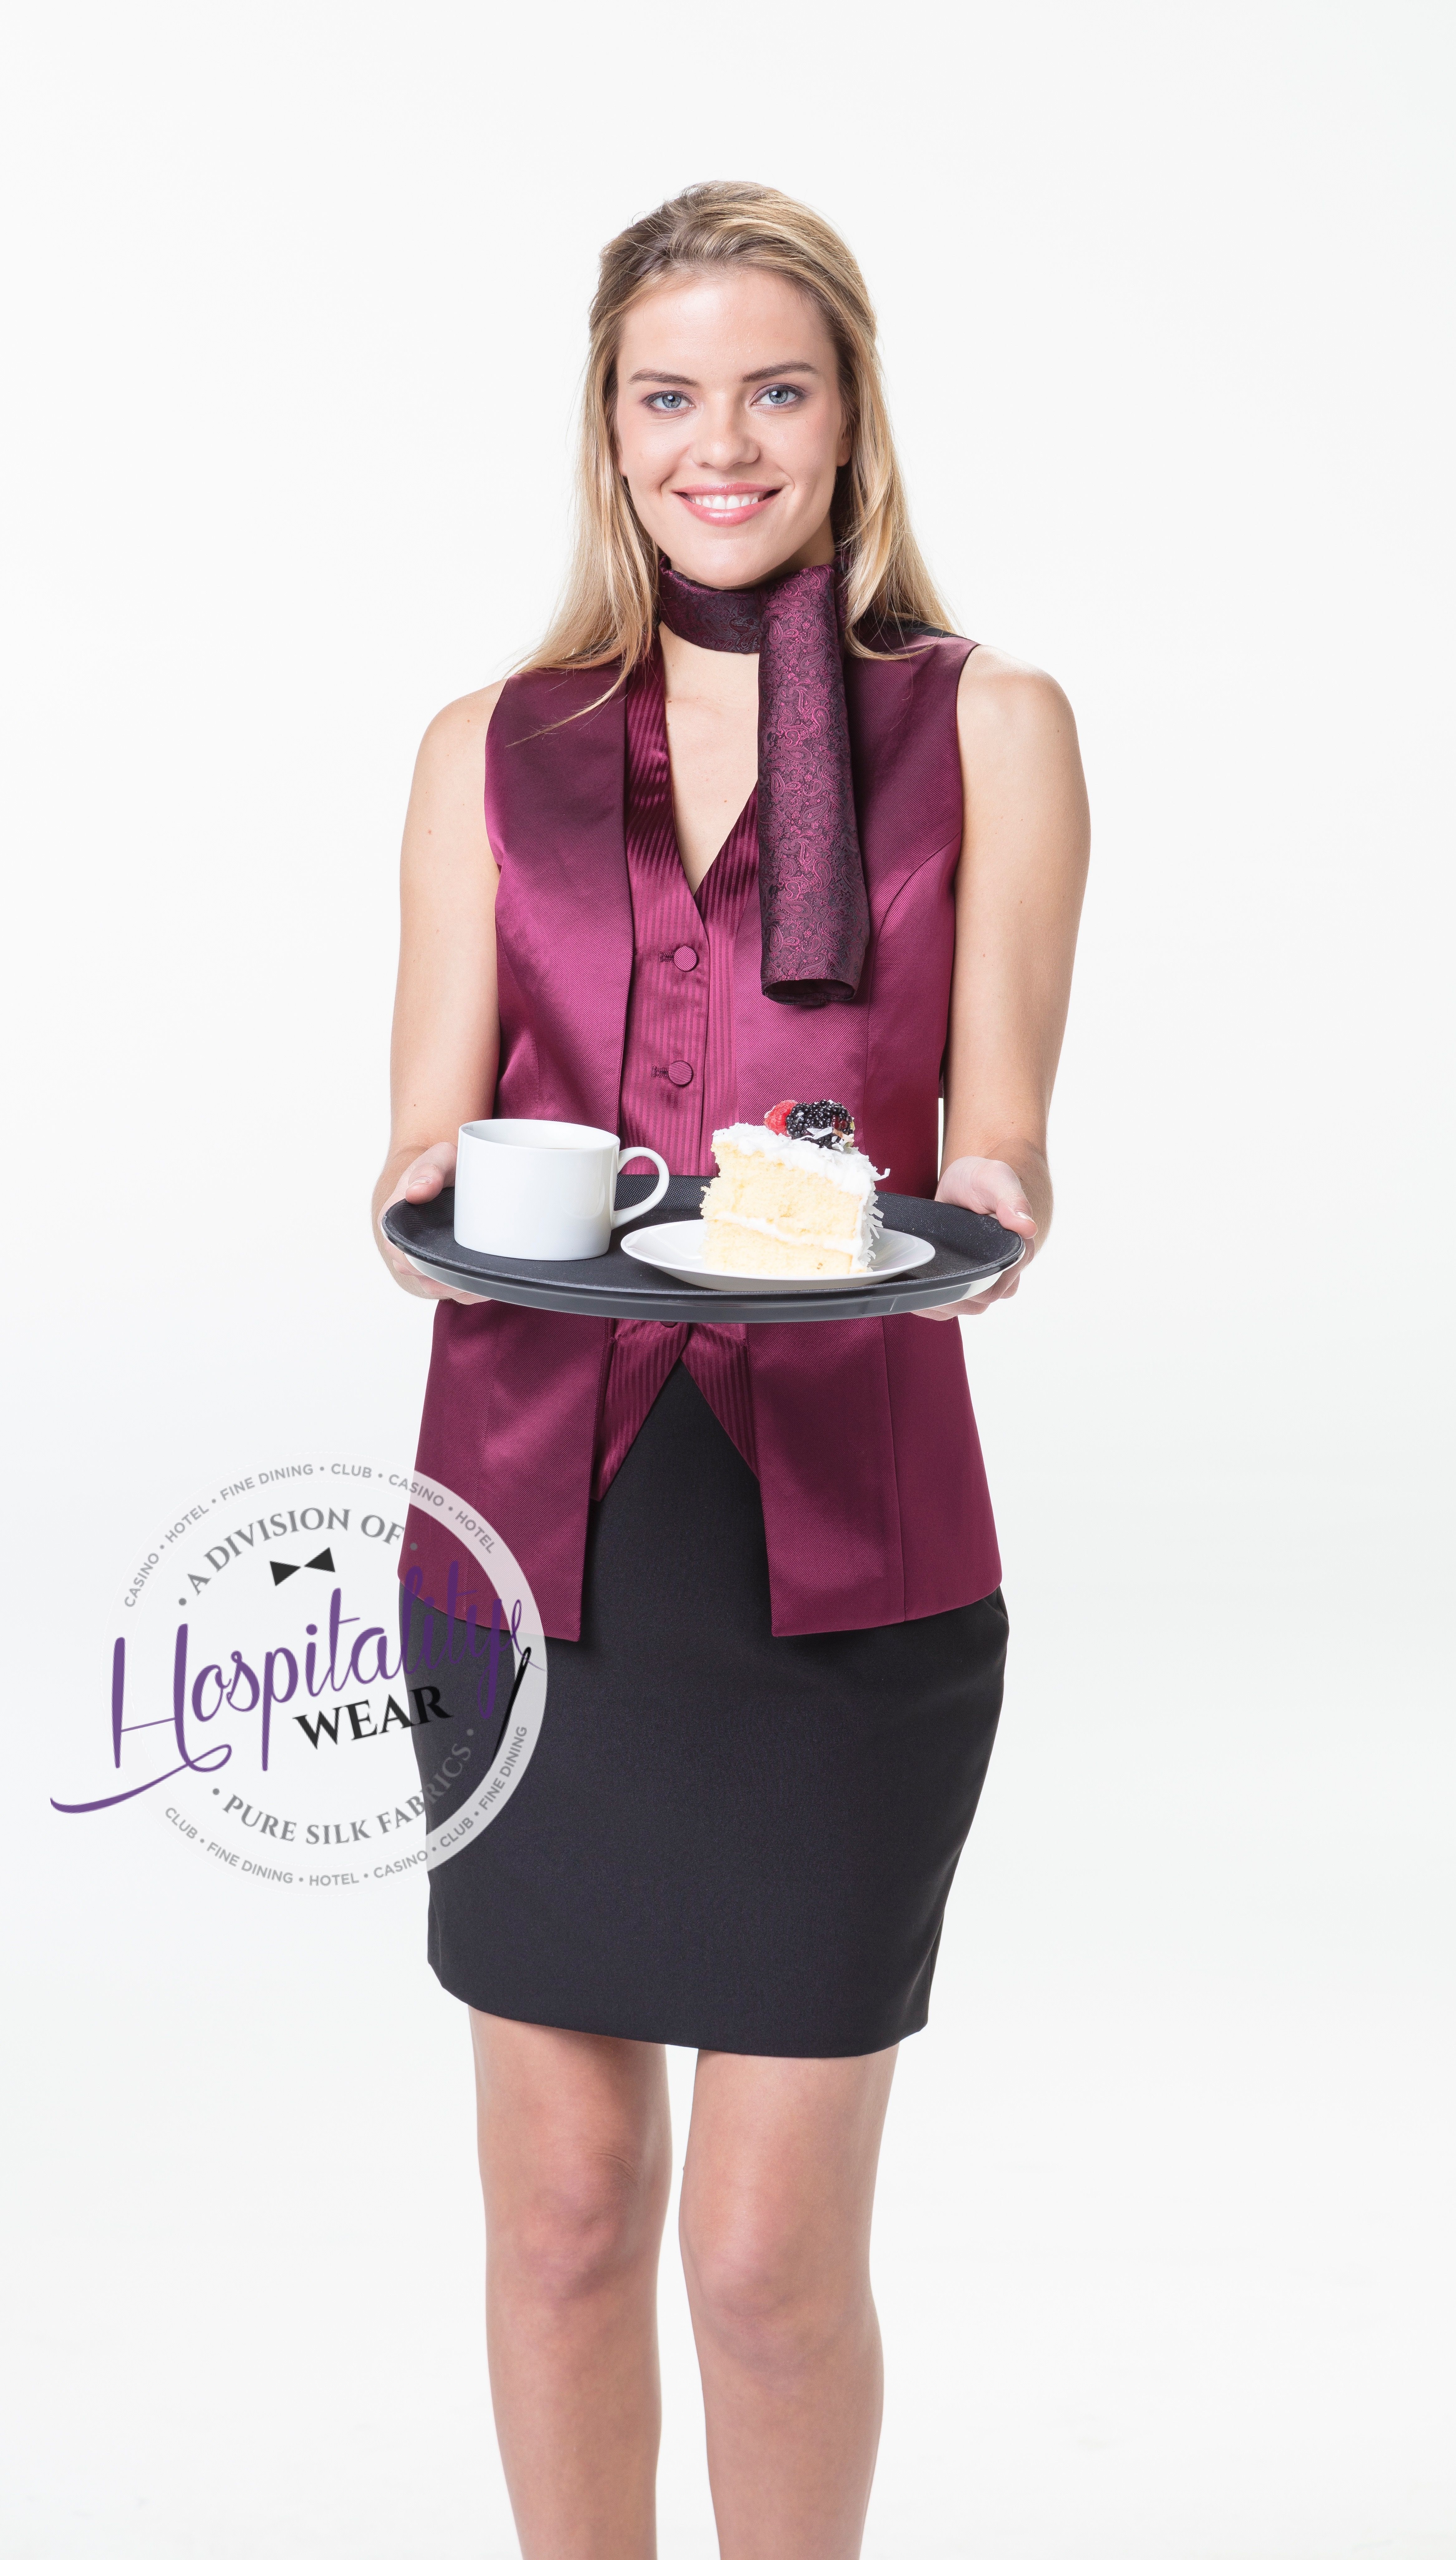 a5aced712701a Maggie-BST5018 this vest is a great look for any and all high end  establishments, Its flattering and sophisticated at the same time.